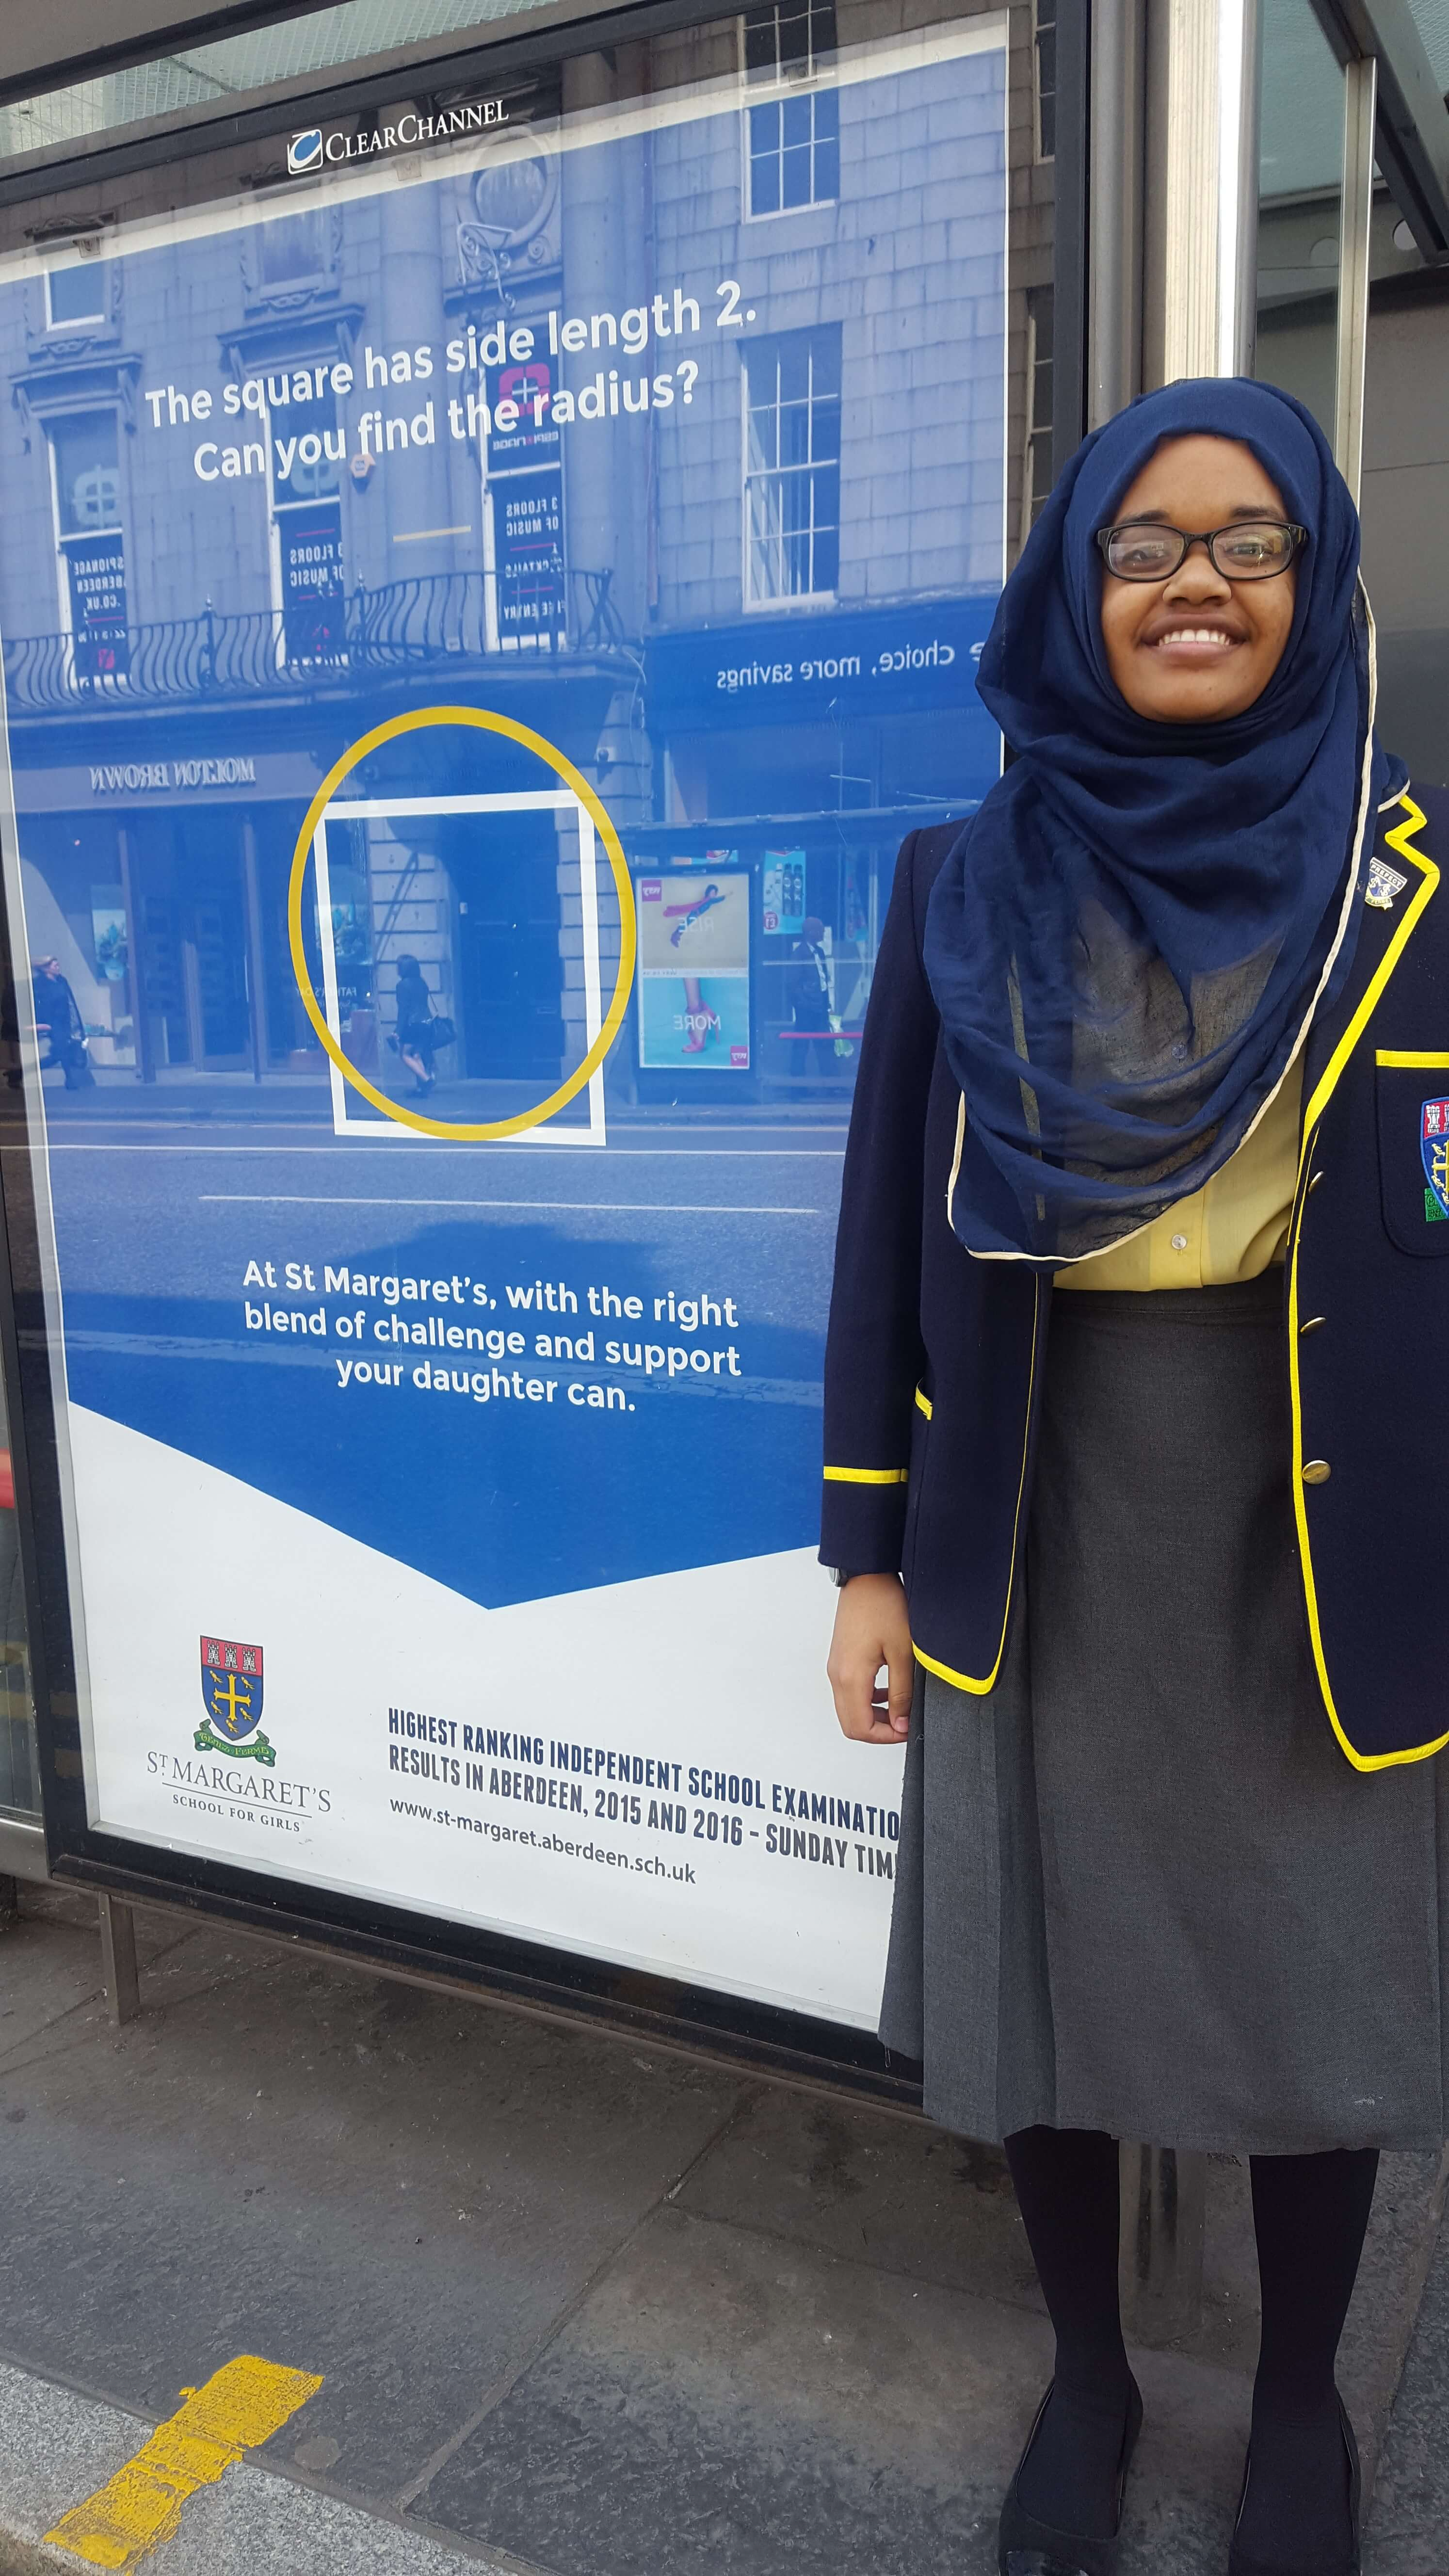 Can you solve the bus stop puzzle?